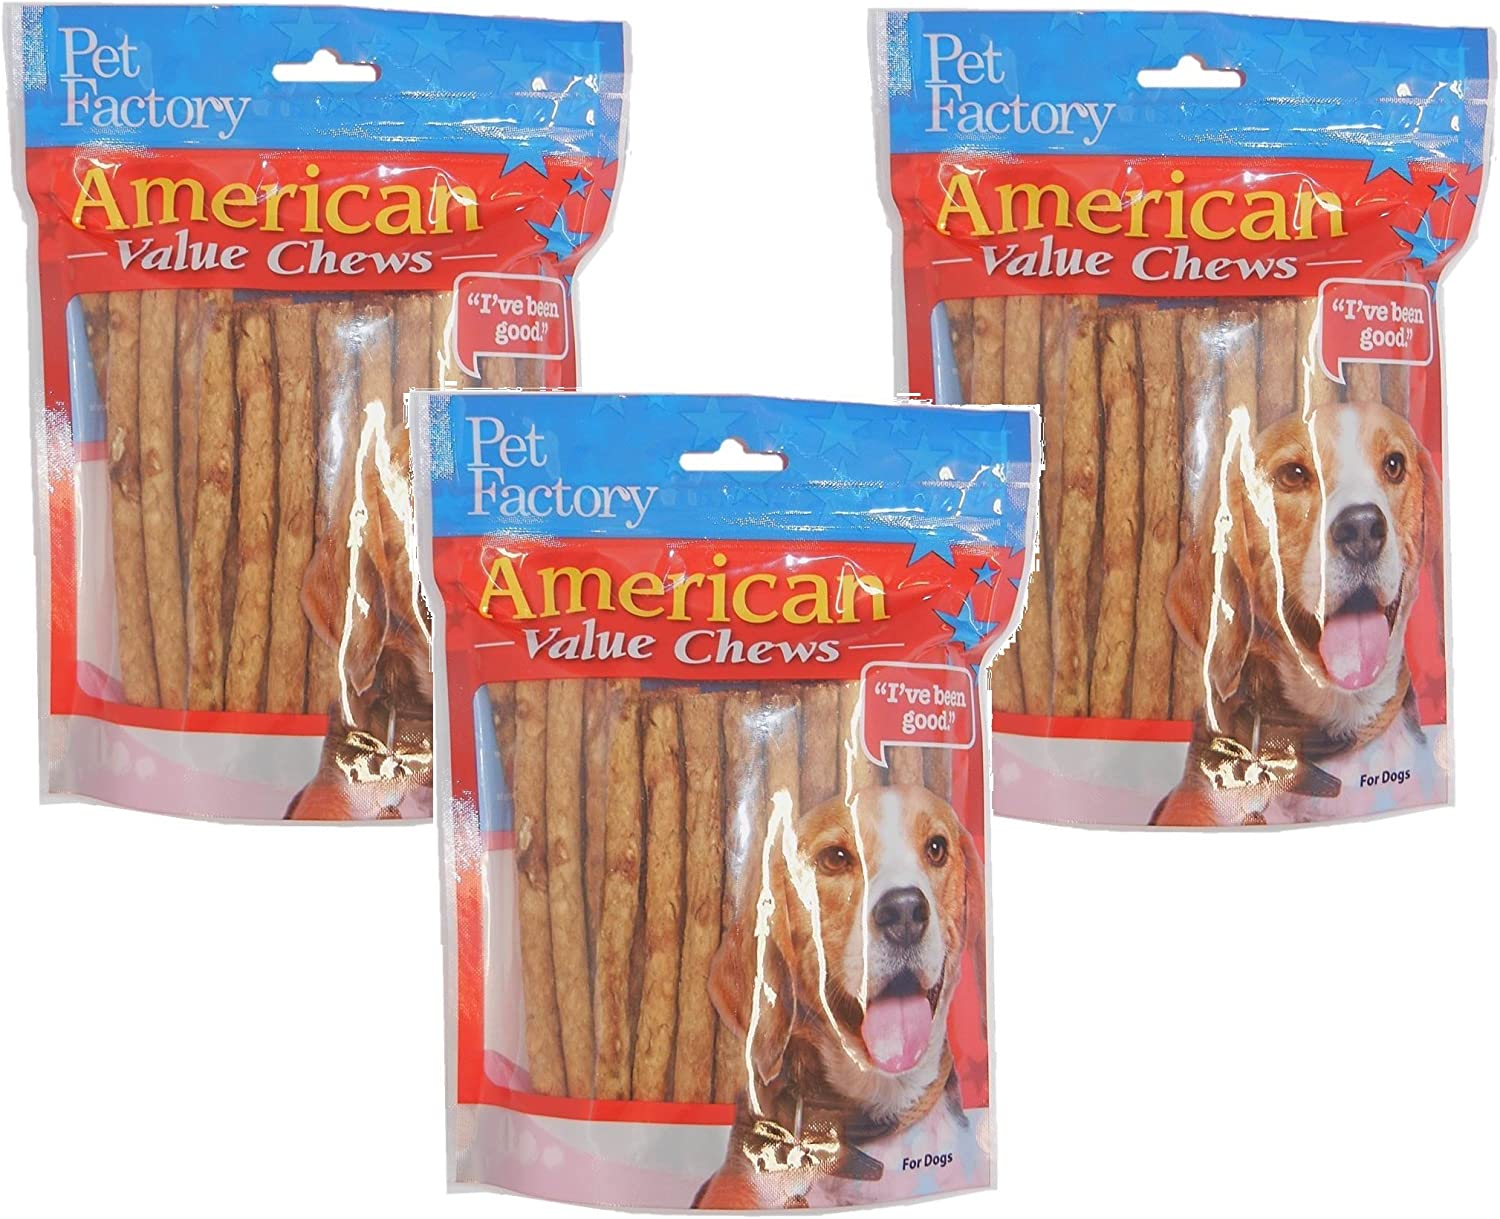 Pet Factory Chicken Dog Roll, 120 Total (3 Packs with 40 Rolls per Pack)